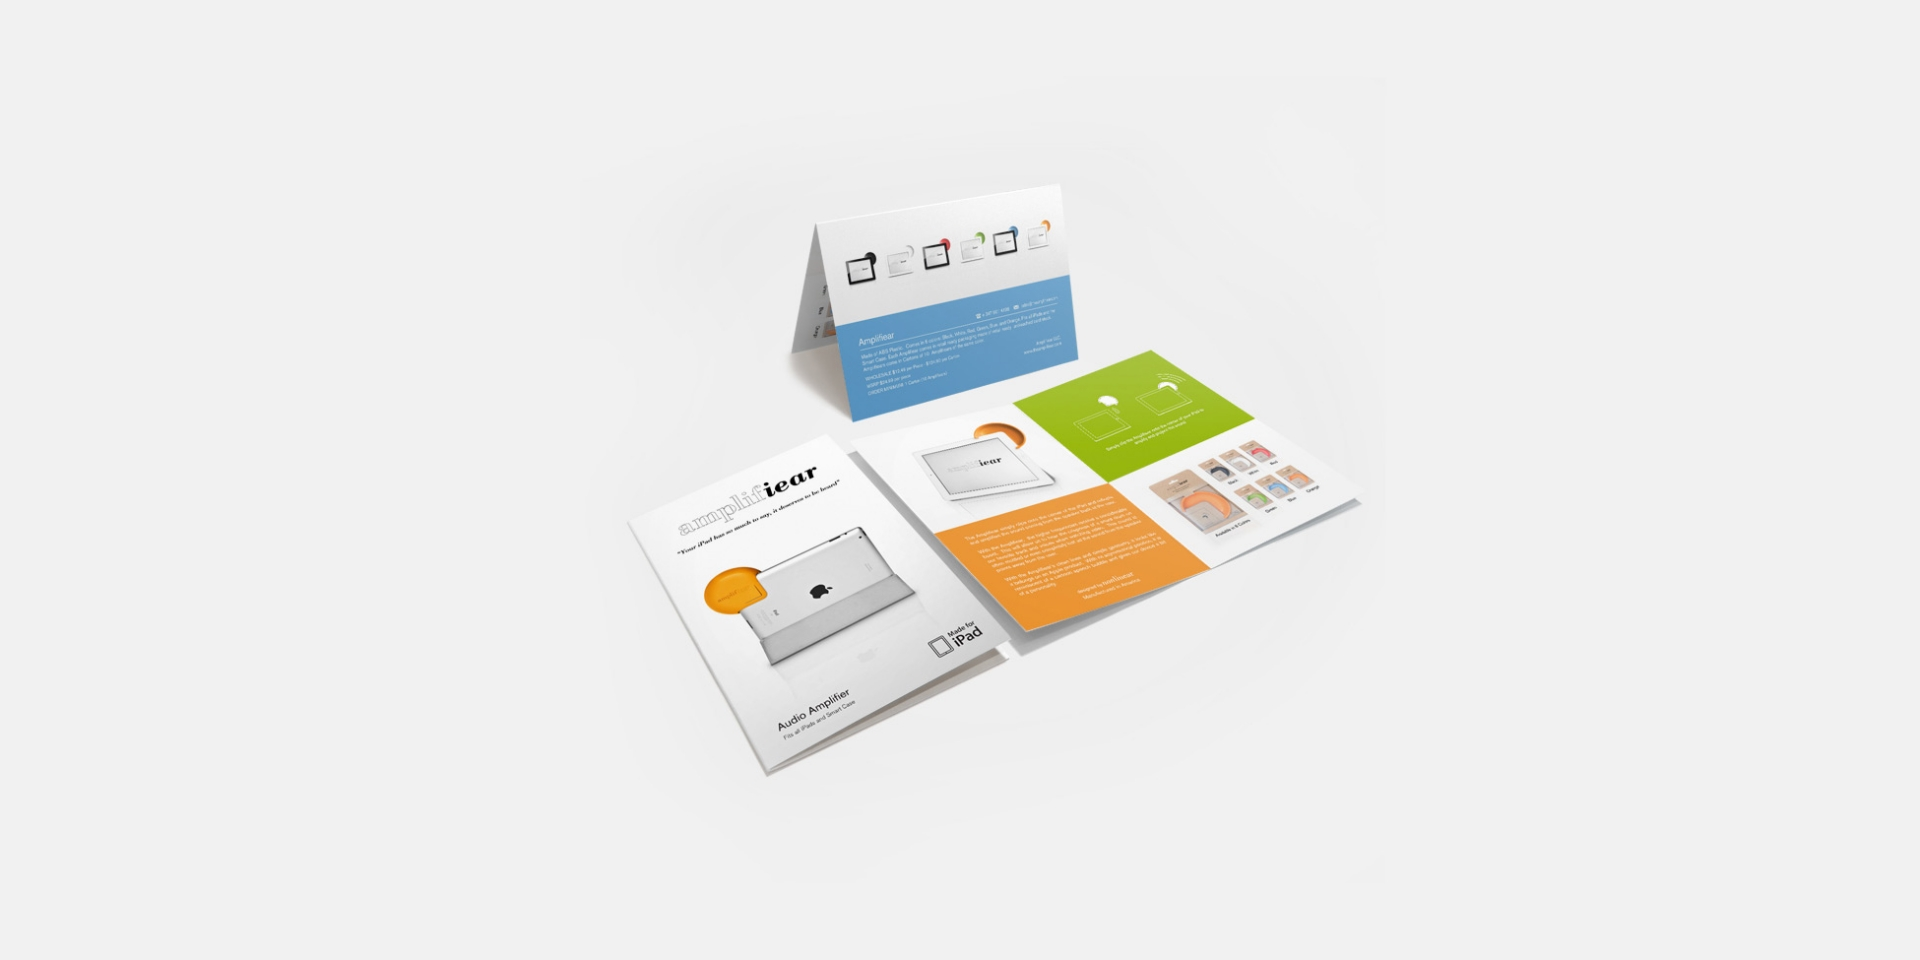 """Amplifiear Branding   Client: Amplifiear 2012  Clabots was involved in all aspects of building the Amplifiear brand. He developed all collateral materials including business cards, stationary, order forms, brochures, and packaging. The card stock of the packaging the was responsibly farmed from renewable forests, so this materiel sensibility was carried through out the design of all collateral materials and was contrasted with the playful """"POP"""" colors of the product. Clabots was also responsible for the art direction and retouching of all brand imagery and the design and execution of the Amplifiear web store."""